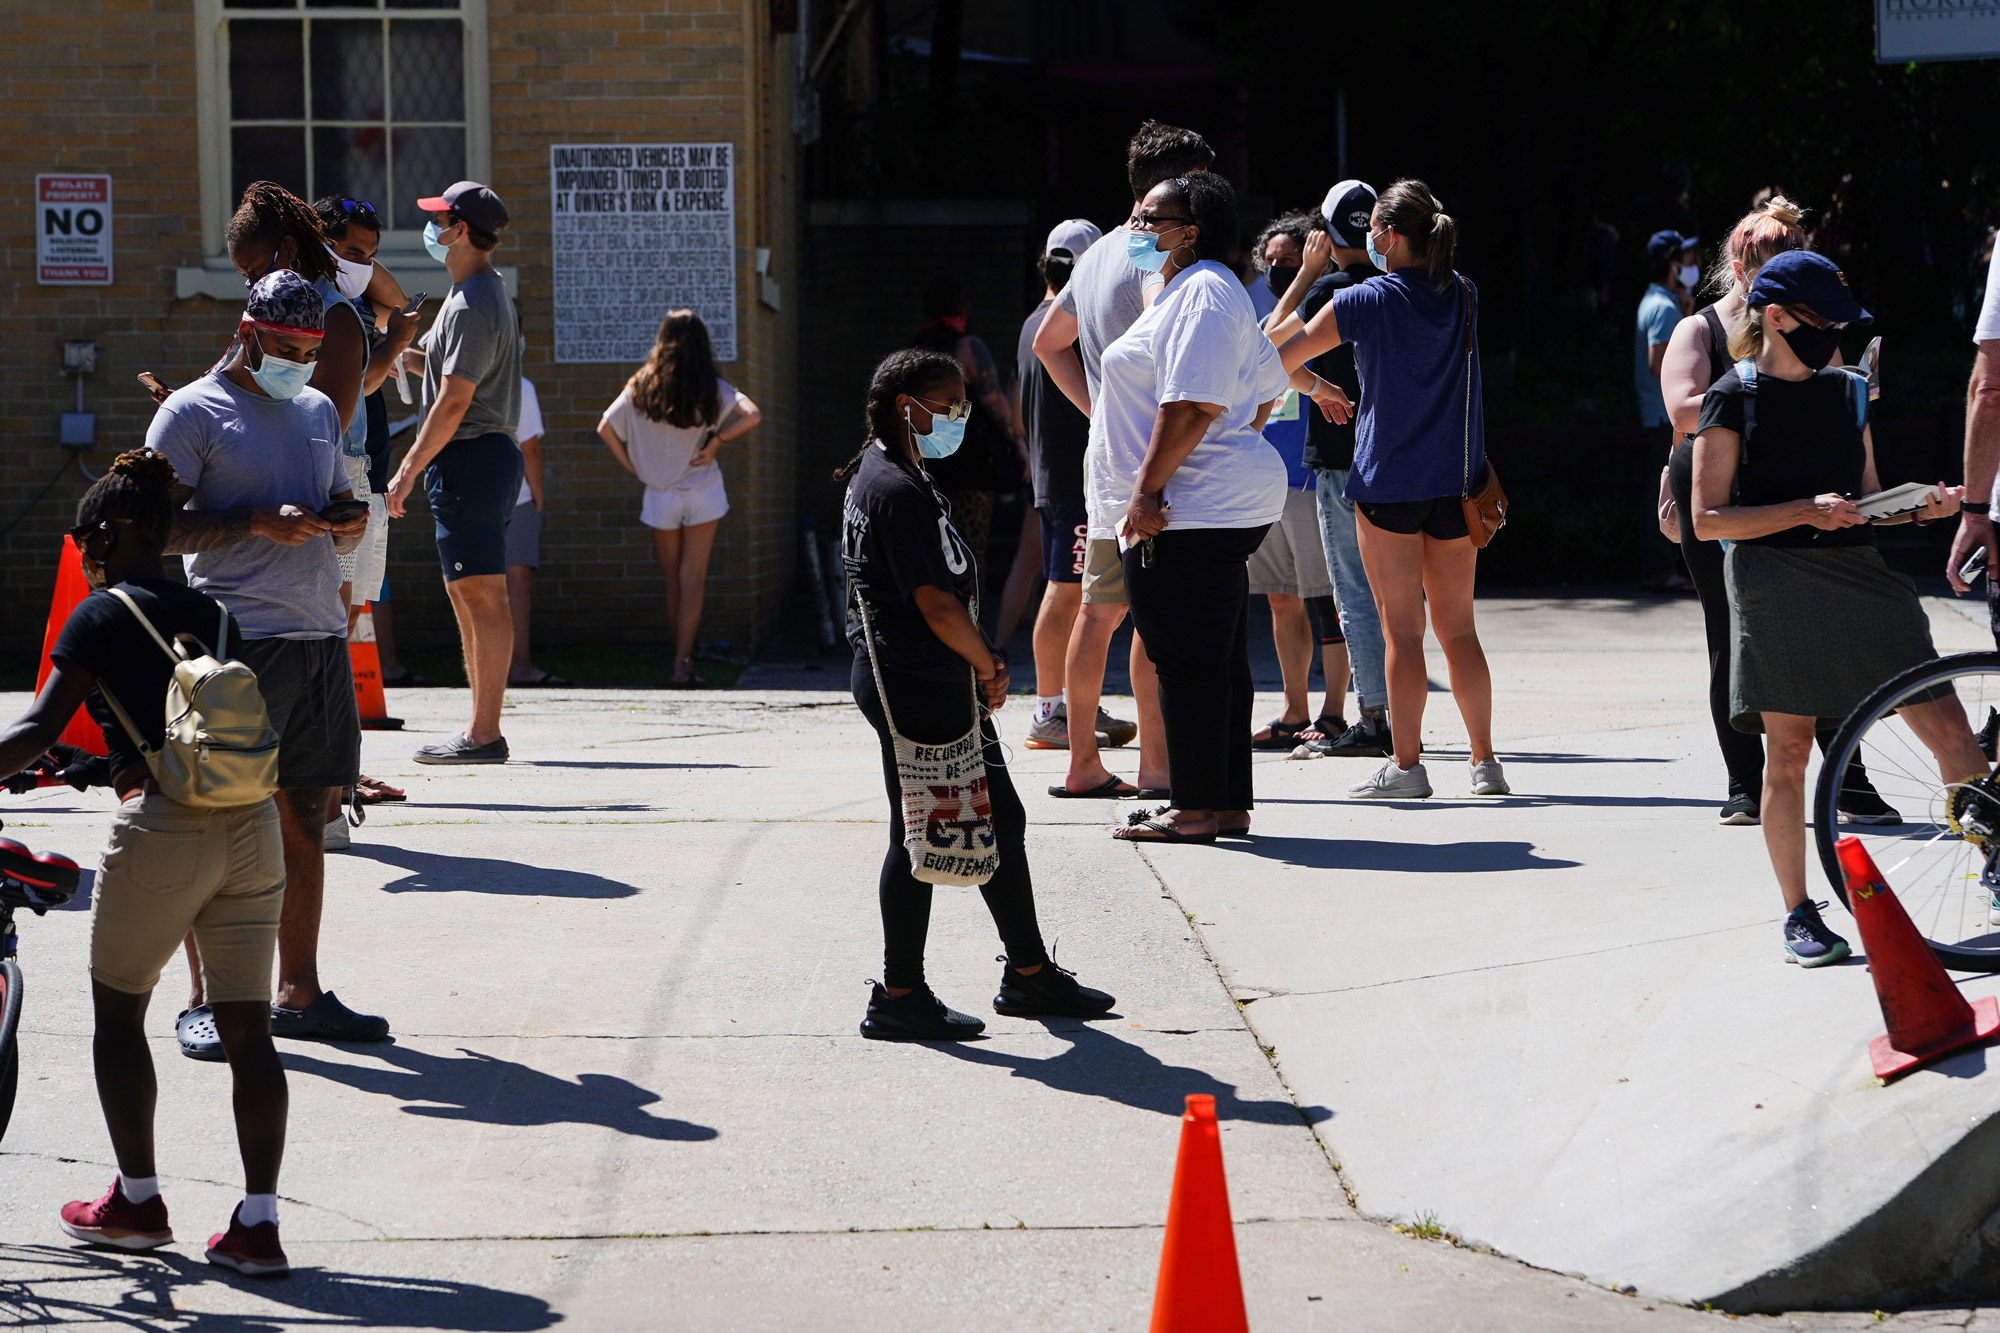 People stand in line to get tested for COVID-19 at a free walk-up testing site on July 11 in Atlanta.